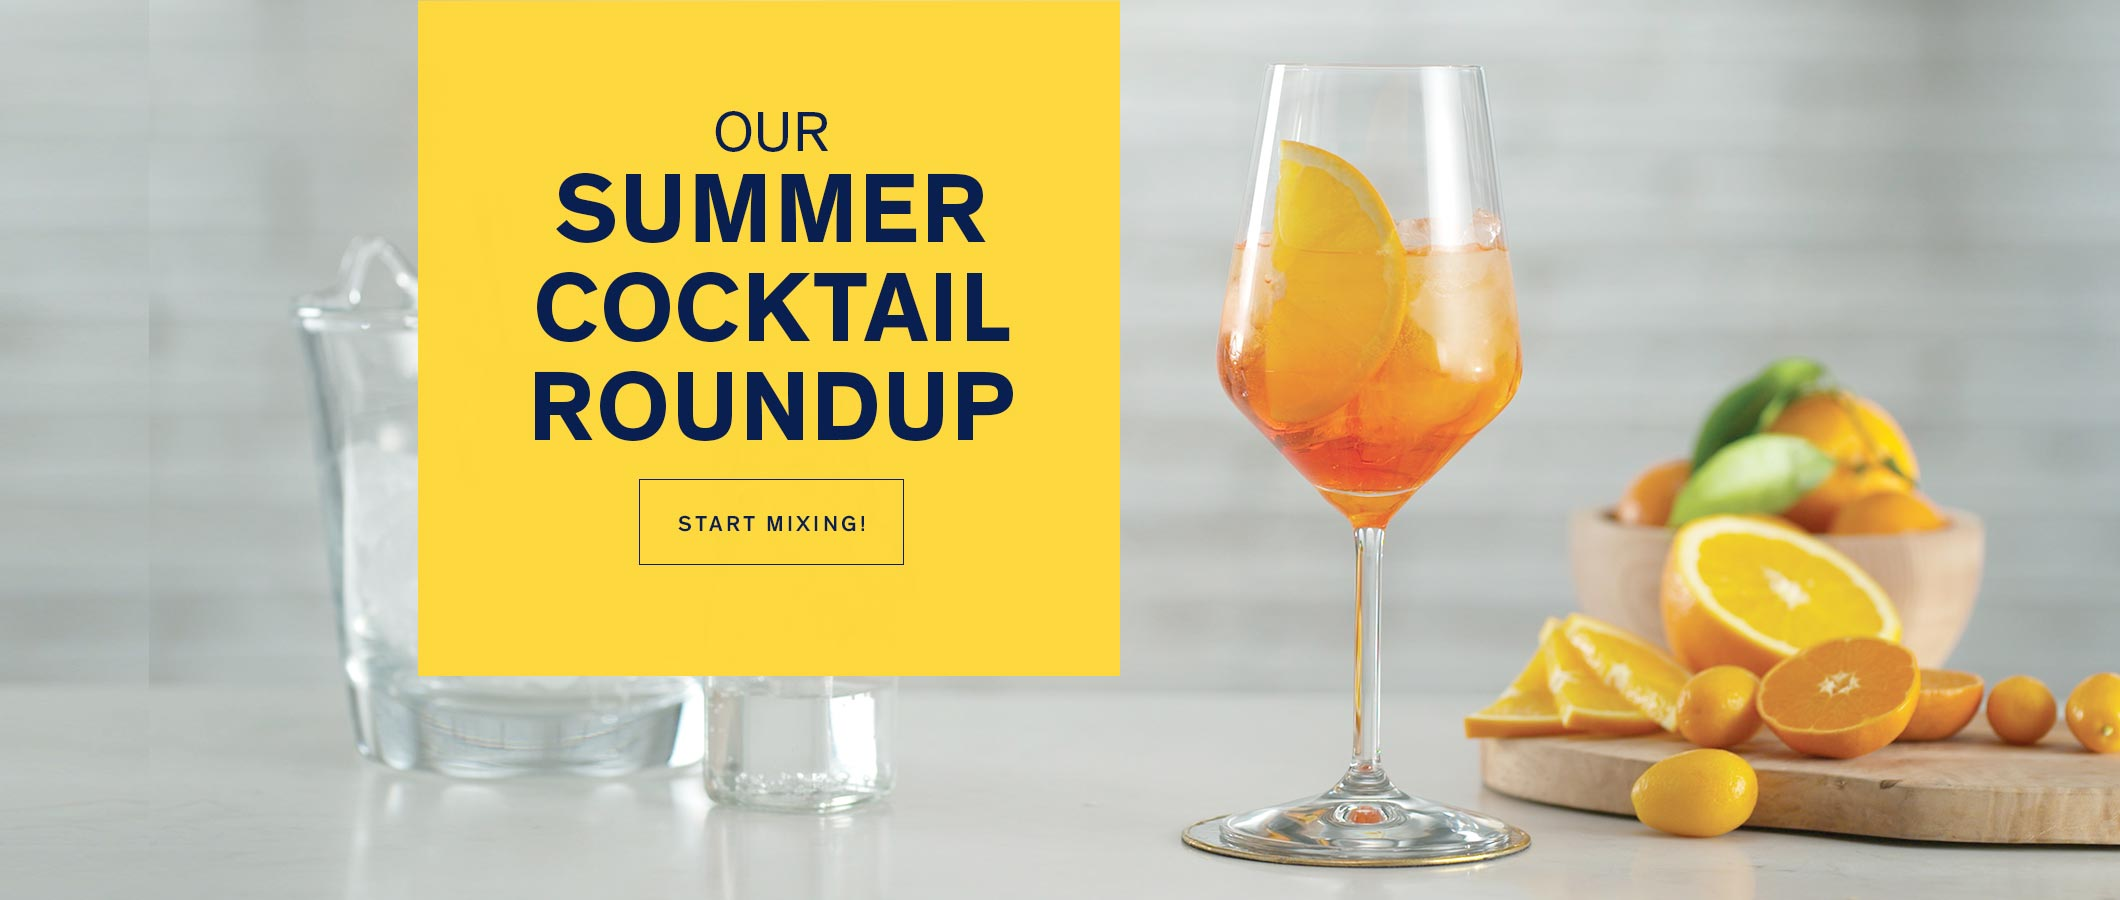 Our Summer Cocktail Roundup